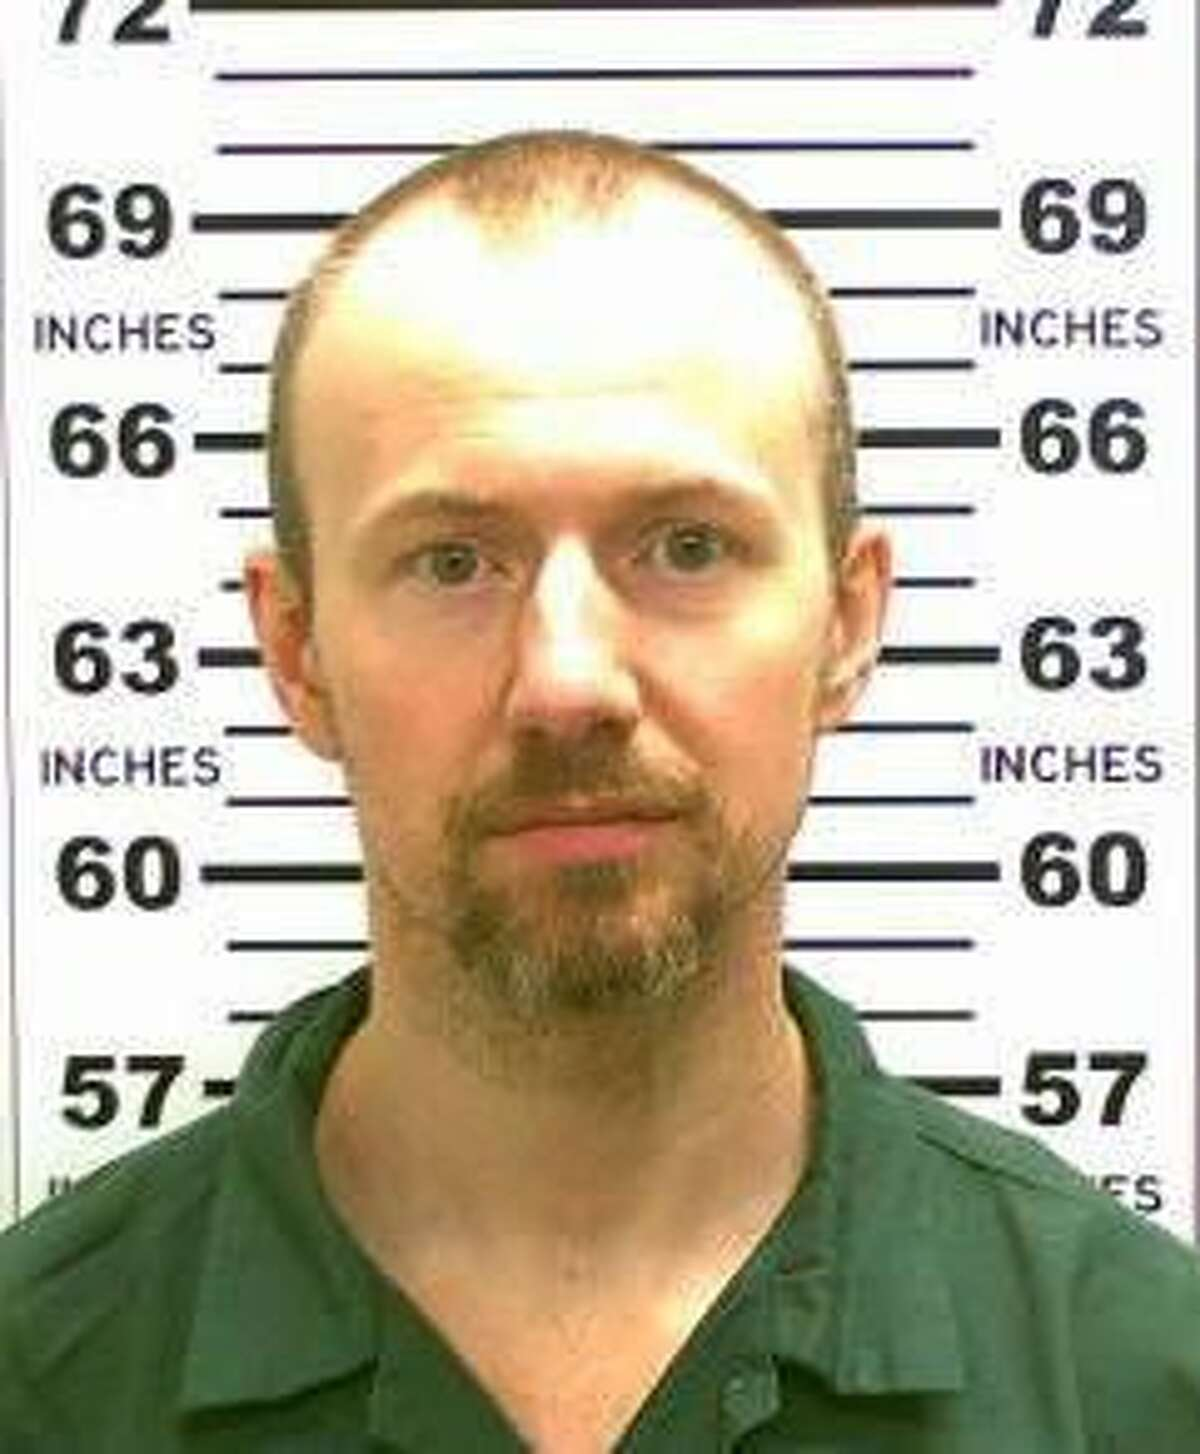 FILE - This May 21, 2015, file photo released by the New York State Police shows David Sweat. Sweat, the second of two convicted murderers who staged a brazen escape from an upstate maximum-security prison three weeks ago, was shot and captured Sunday, June 28, 2015, two days after his fellow inmate was killed in a confrontation with law enforcement officers, a sheriff said. (New York State Police via AP, File)